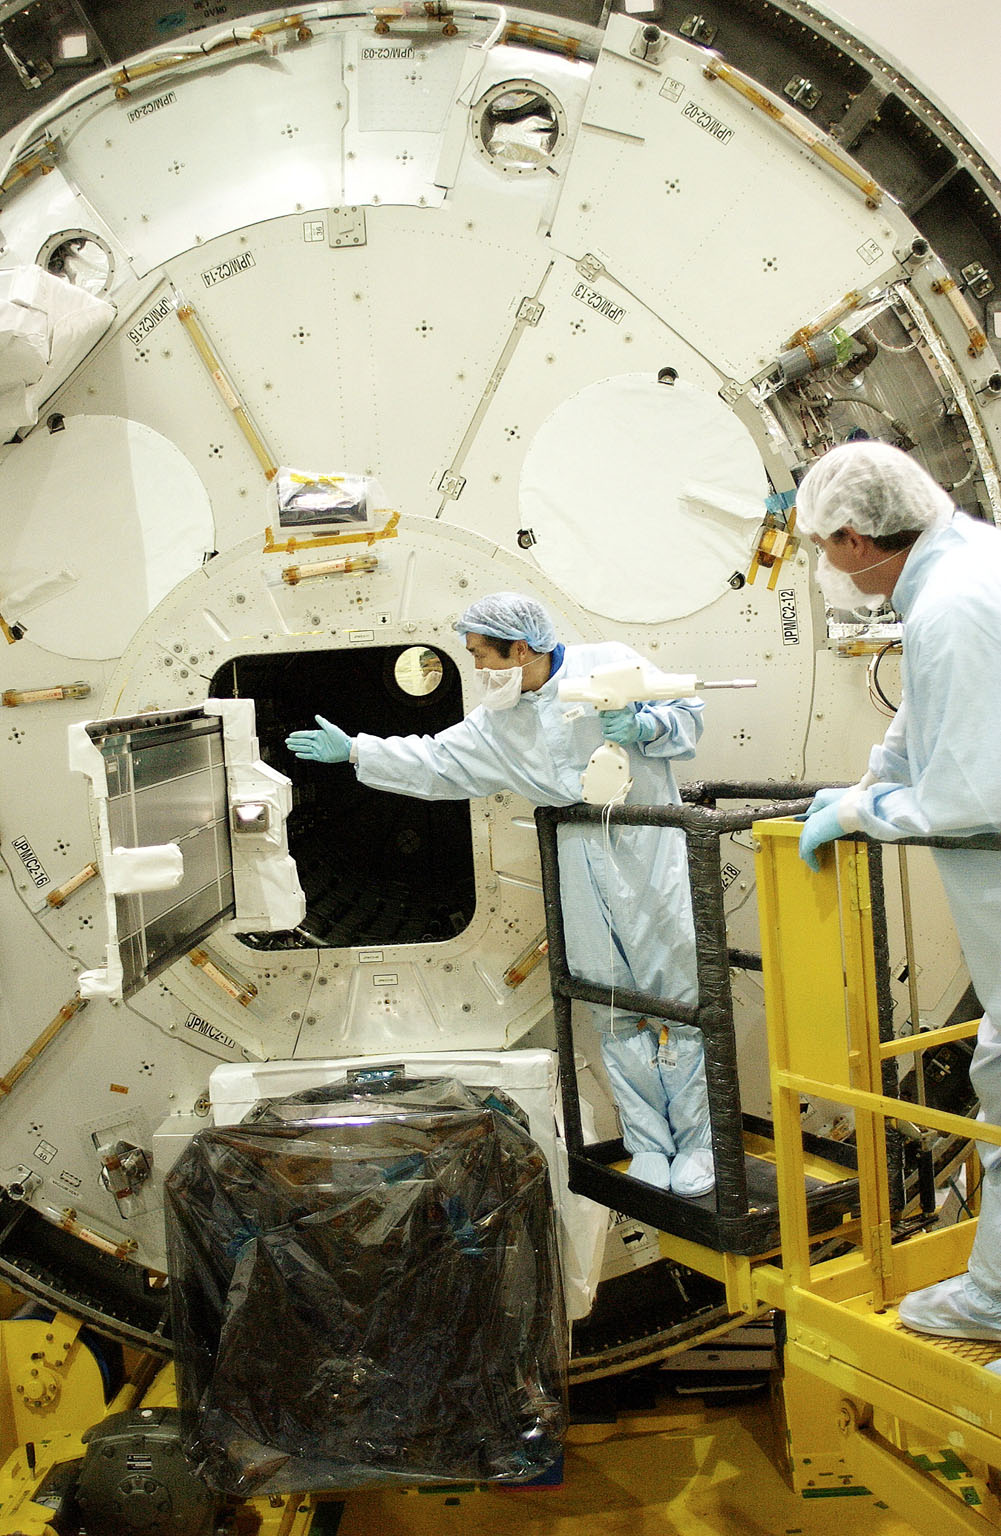 KENNEDY SPACE CENTER, FLA. - Japanese astronaut Koichi Wakata (left) releases a tray extended from inside the Pressurized Module, or PM, that he was working with. Part of the Japanese Experiment Module (JEM), the PM provides a shirt-sleeve environment in which astronauts on the International Space Station can conduct microgravity experiments. There are a total of 23 racks, including 10 experiment racks, inside the PM providing a power supply, communications, air conditioning, hardware cooling, water control and experiment support functions. The JEM/PM is in the Space Station Processing Facility.